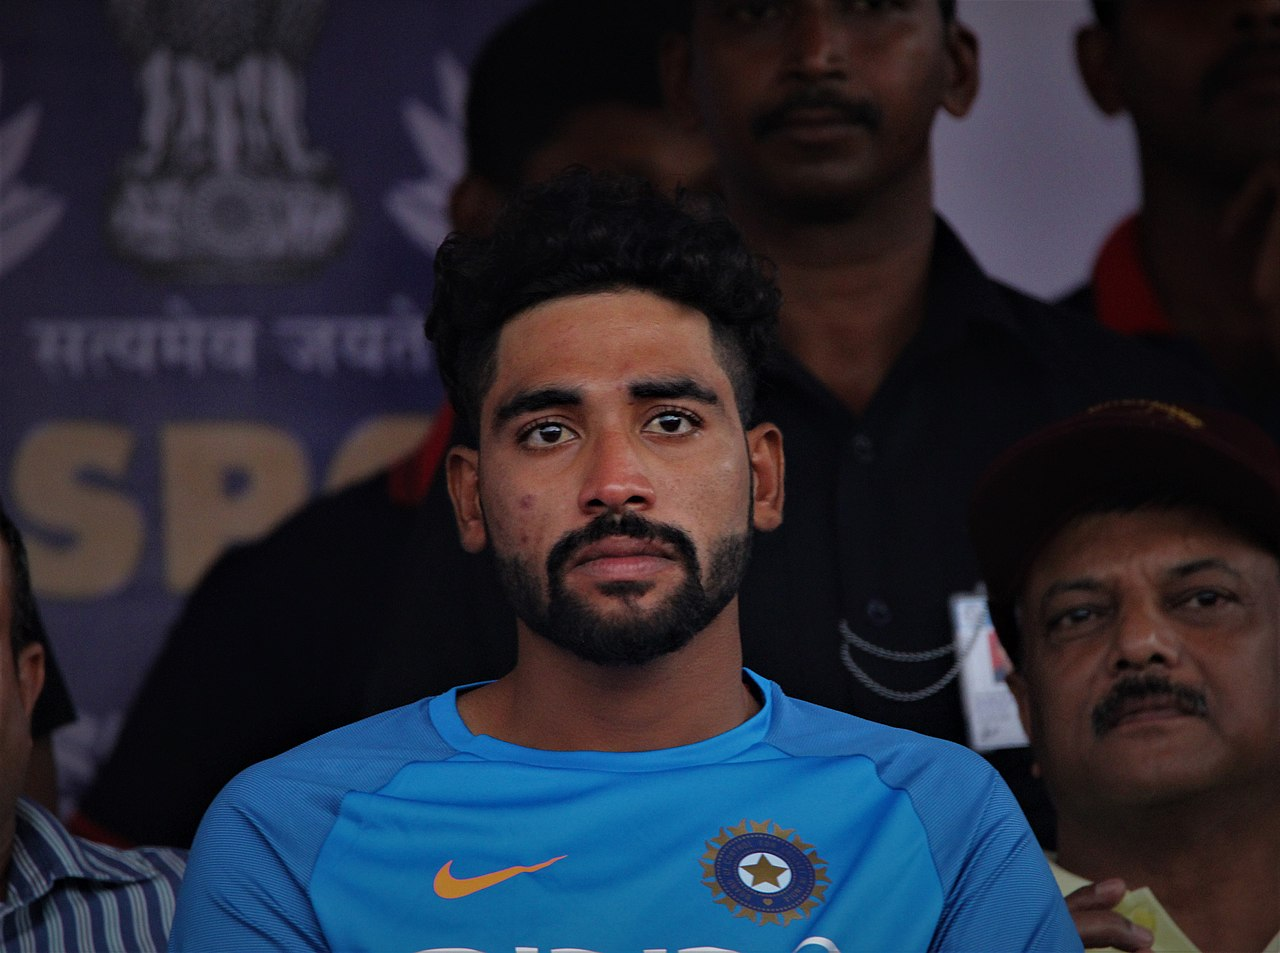 The BCCI has released a document following the death of Mohammad Siraj's father